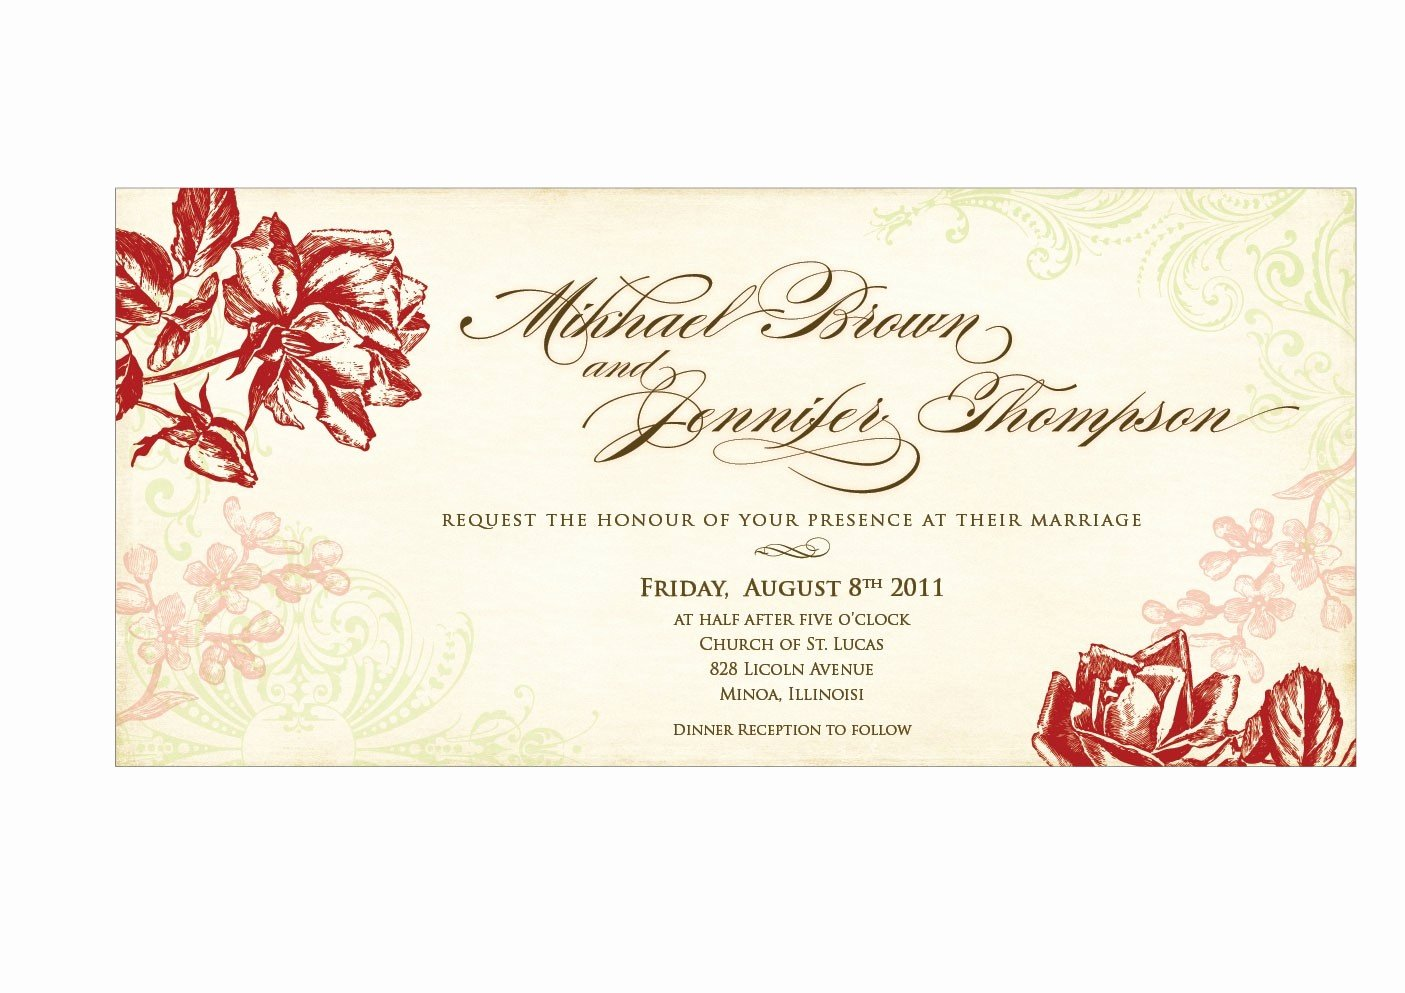 Email Wedding Invitation Template Best Of Email Wedding Invitation Templates Free Download